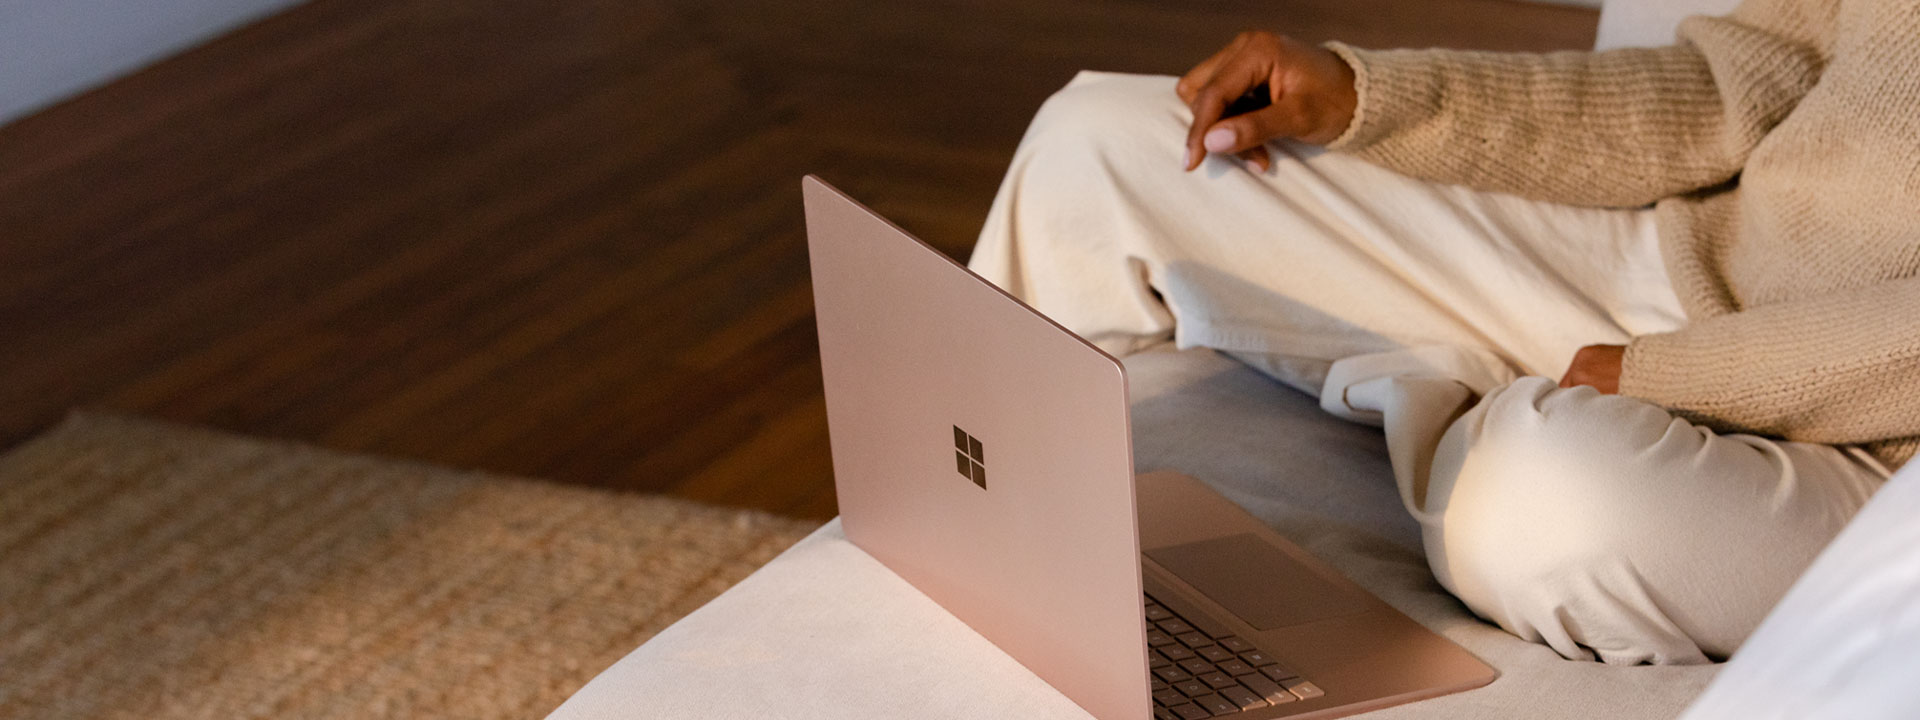 A woman sits in front of Surface Laptop 3 on a couch